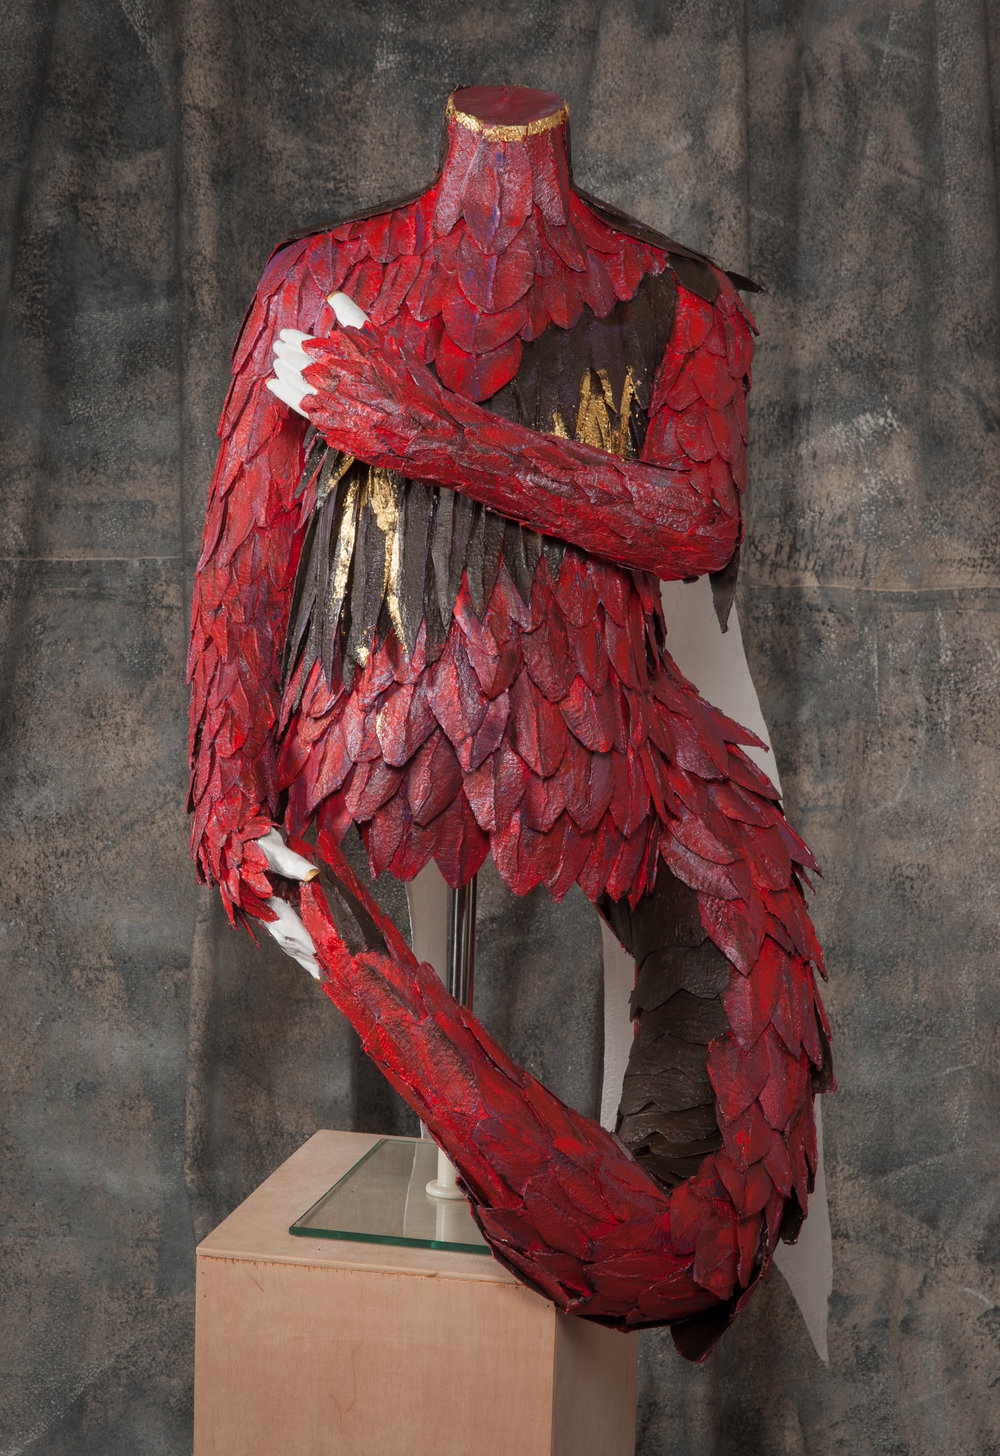 Dragon - Reclaimed torso, plaster, fabric, recycled materials